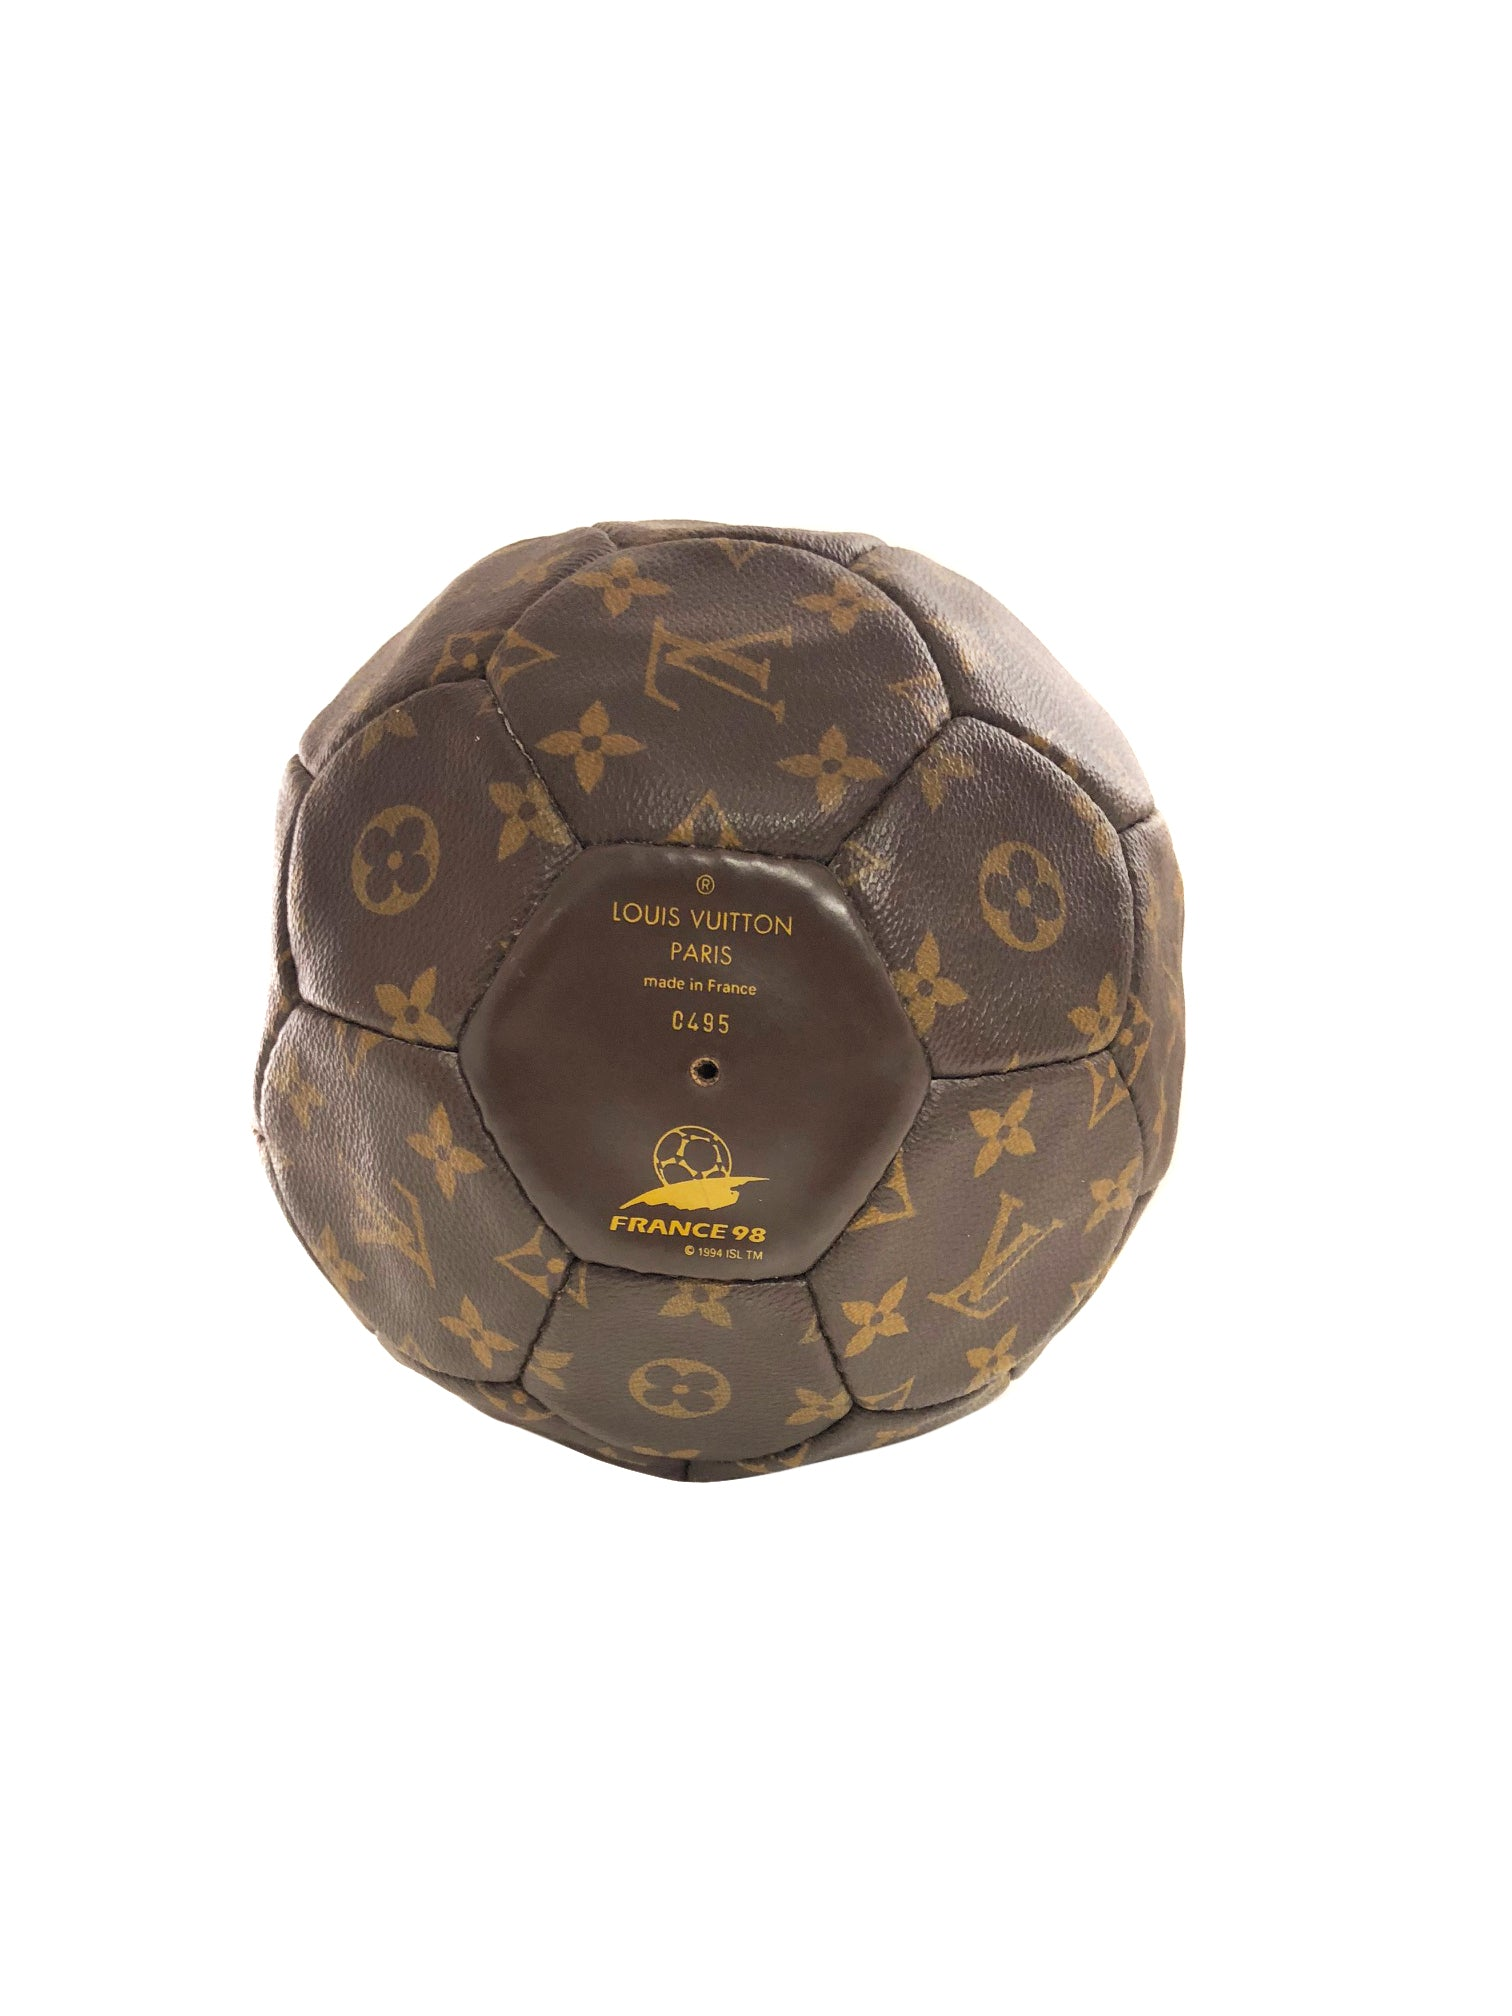 Vintage Louis Vuitton Soccer Ball